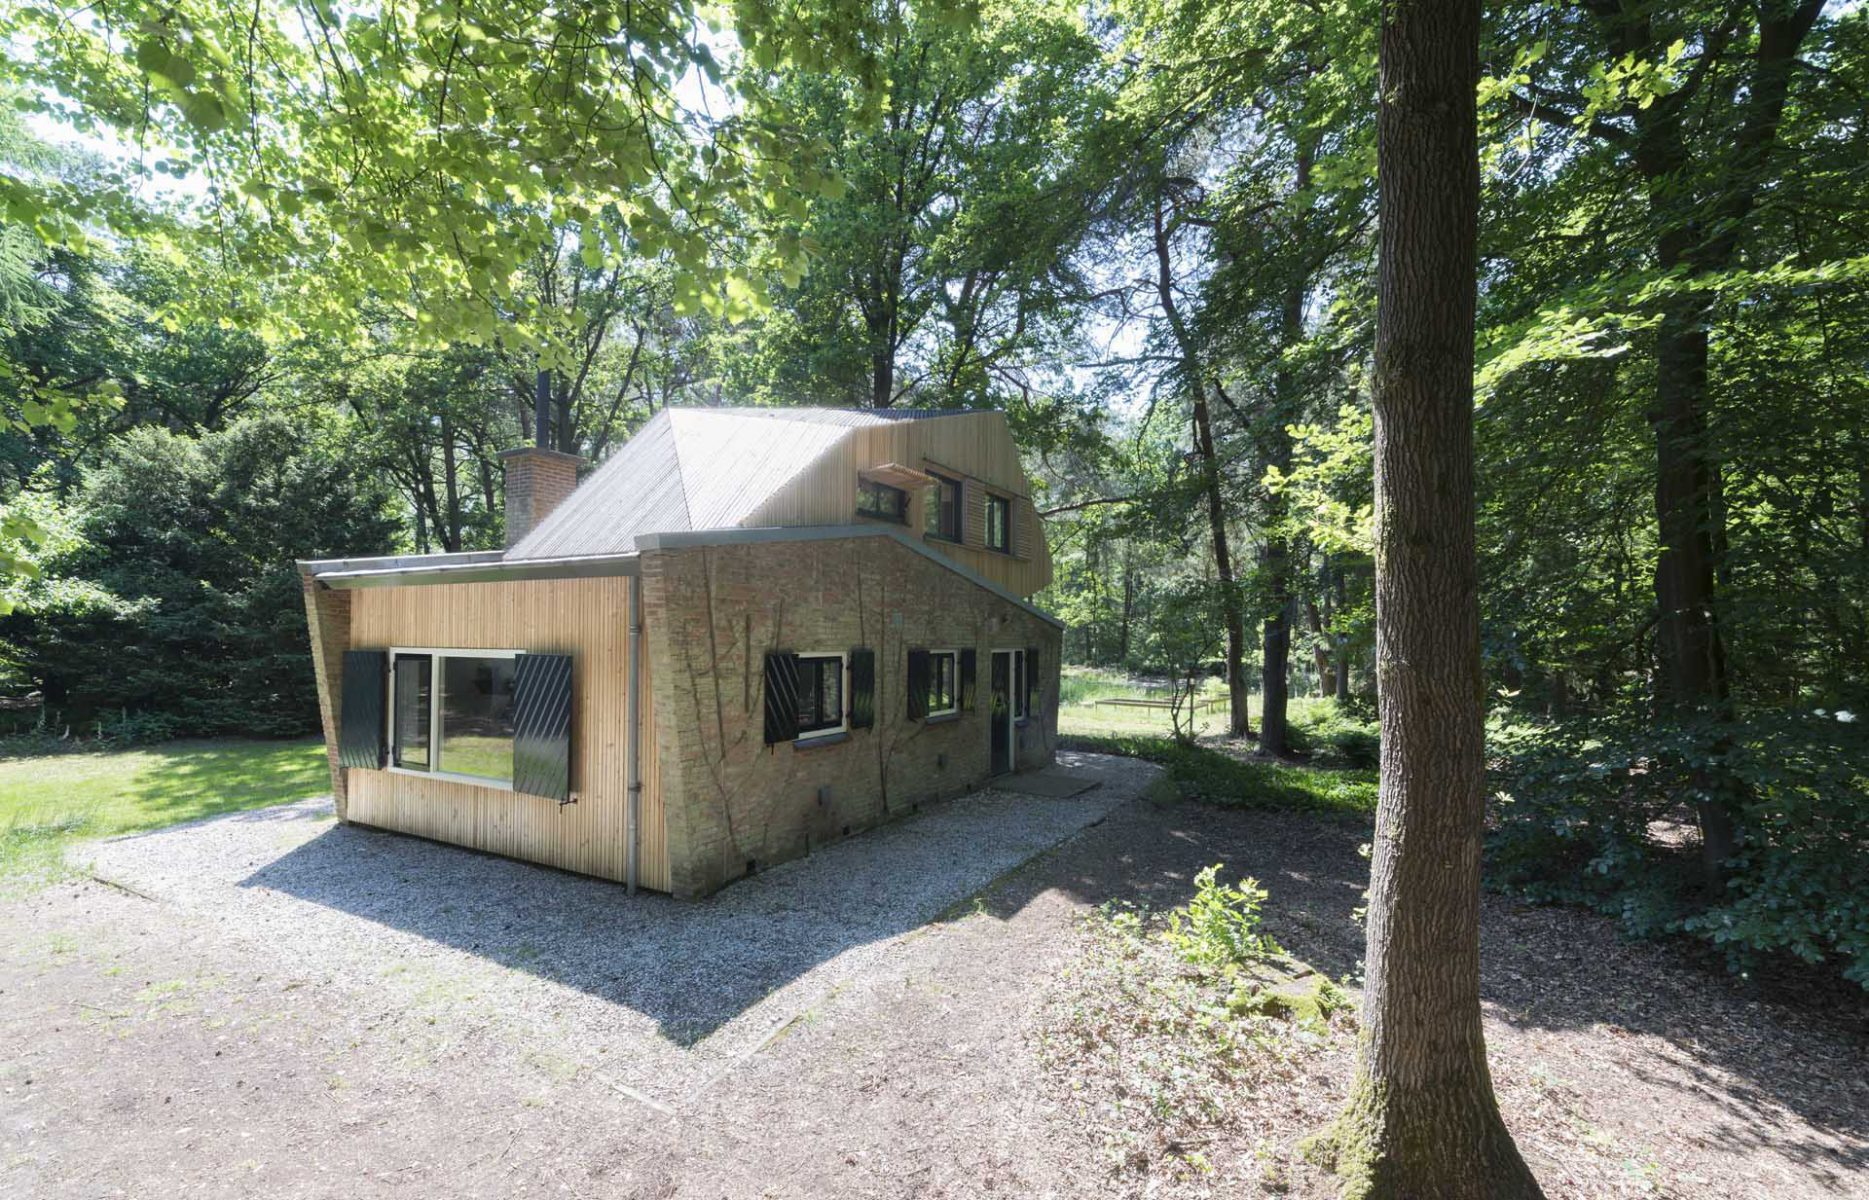 Extension wooden house in the forest